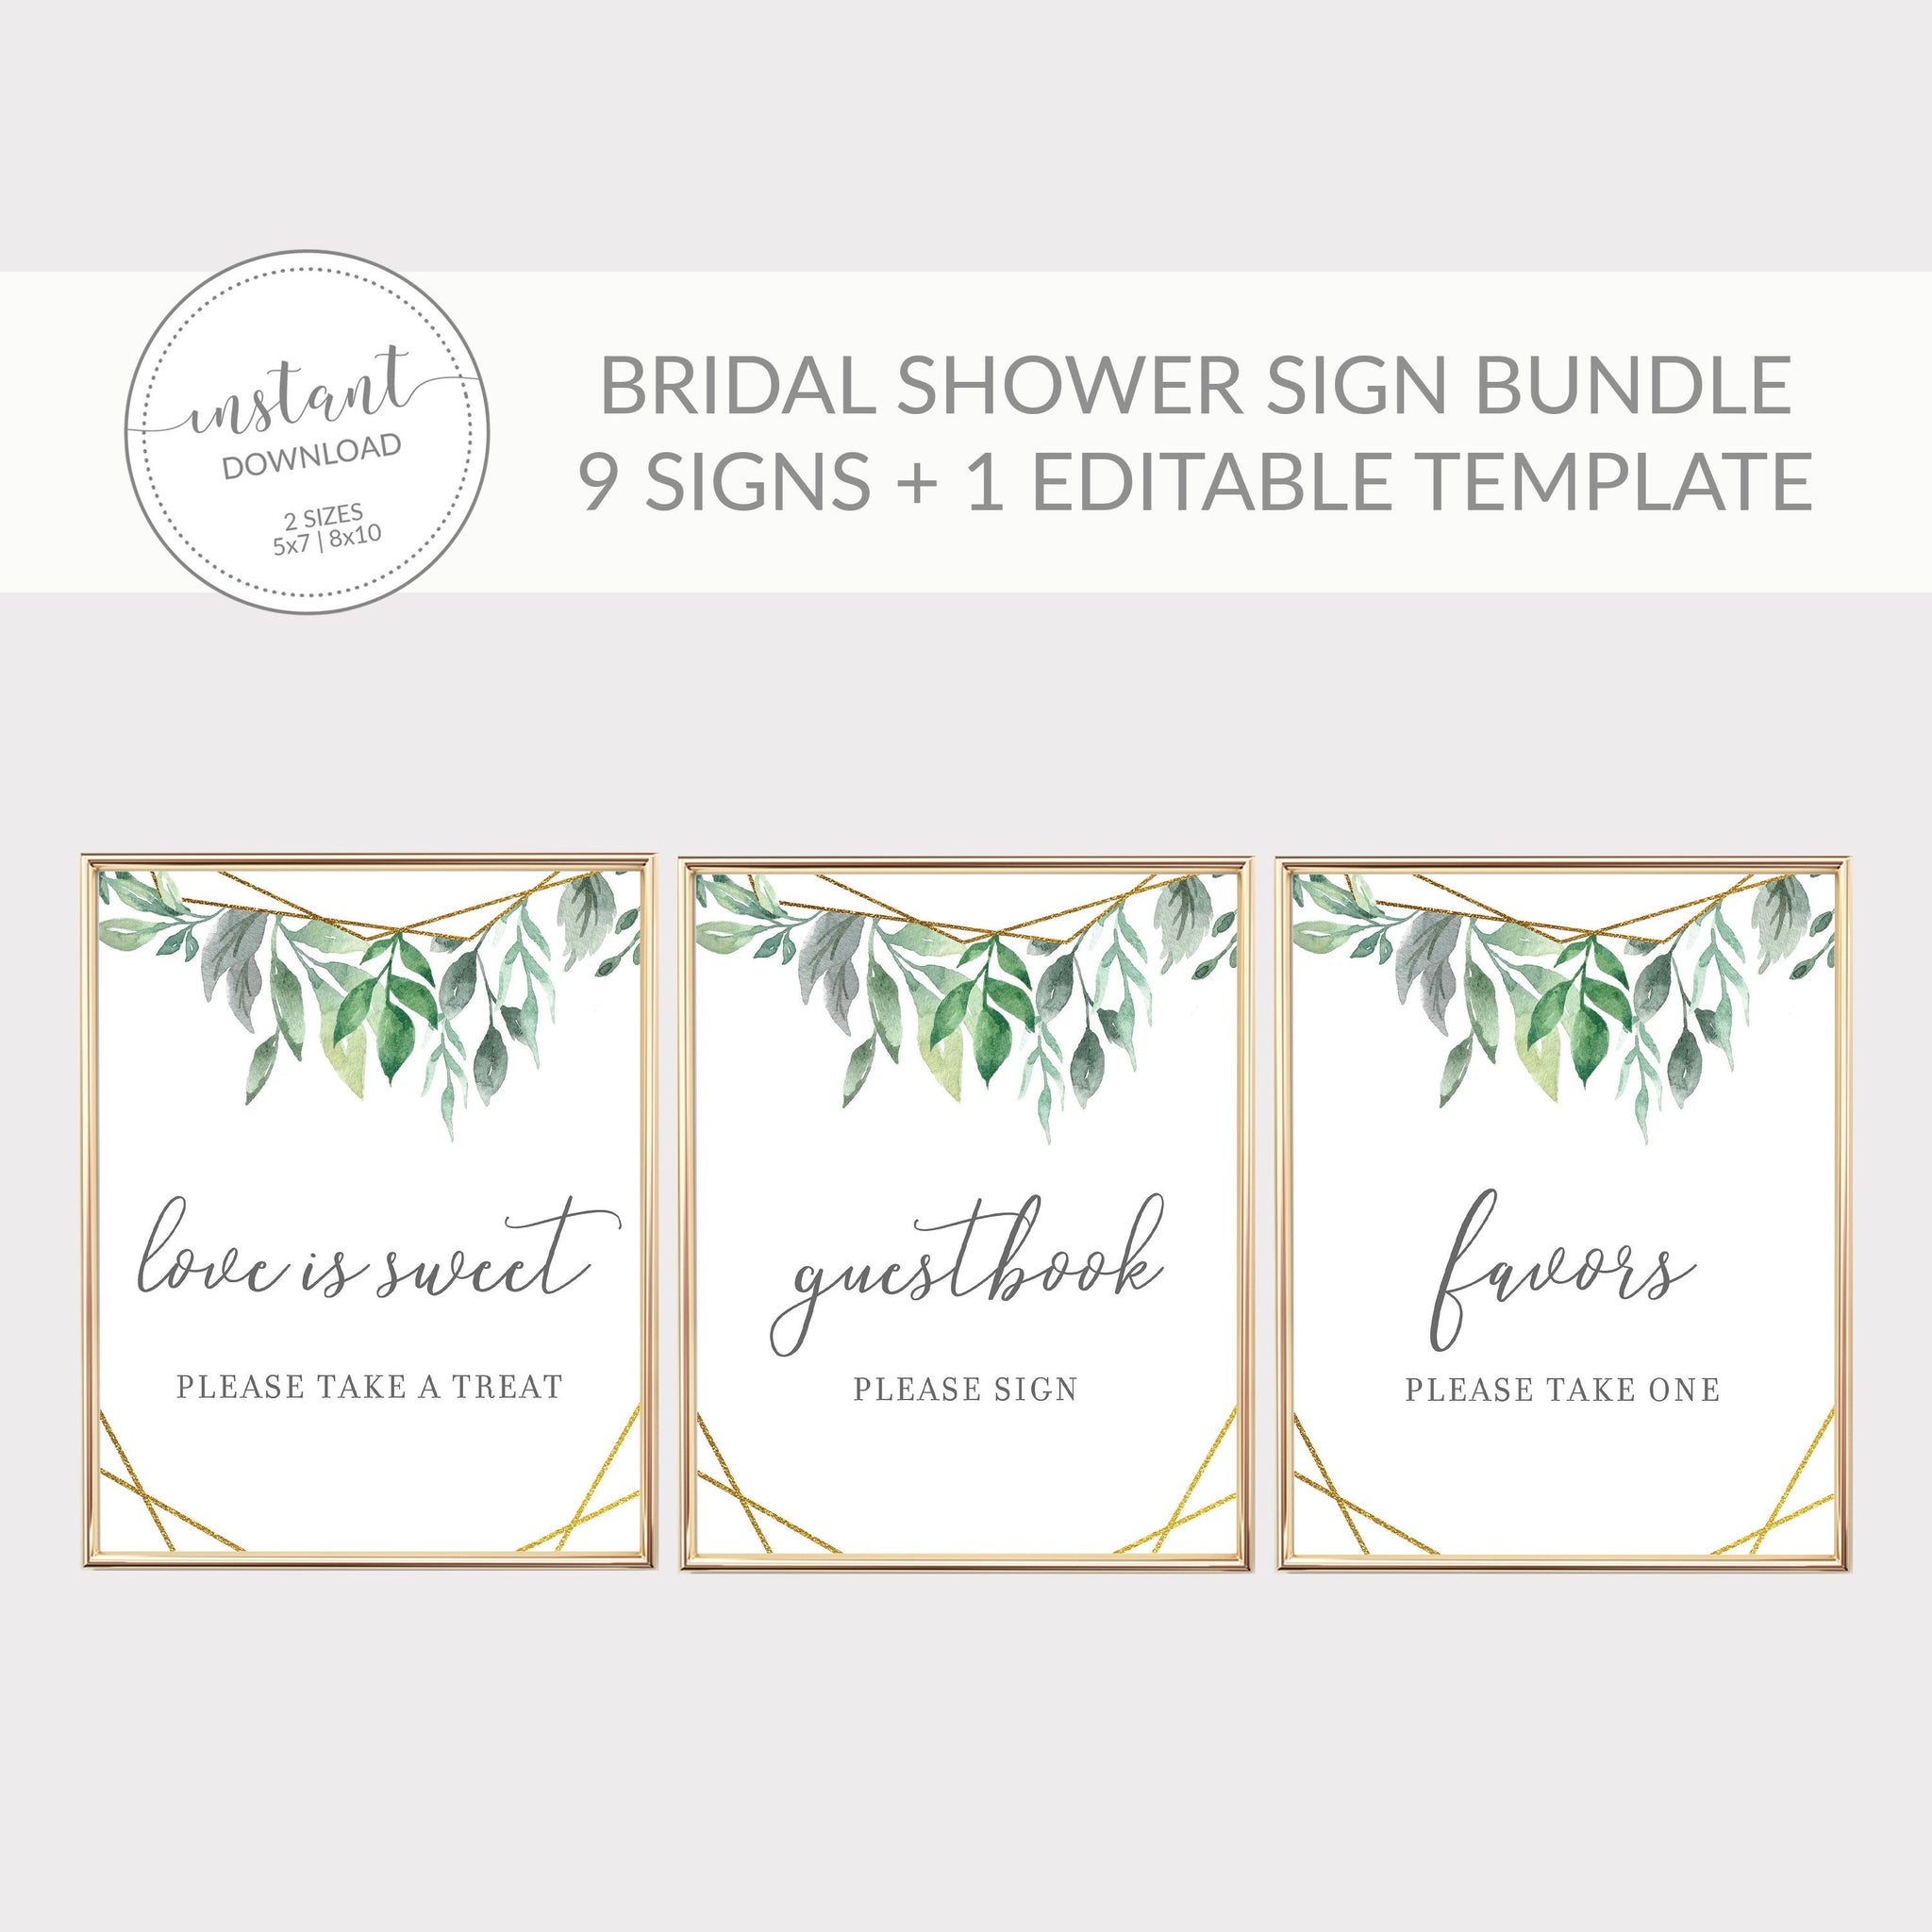 Geometric Gold Greenery Printable Bridal Shower Sign Bundle, INSTANT DOWNLOAD, Editable Bridal Shower Sign, Decorations Supplies - GFG100 - @PlumPolkaDot